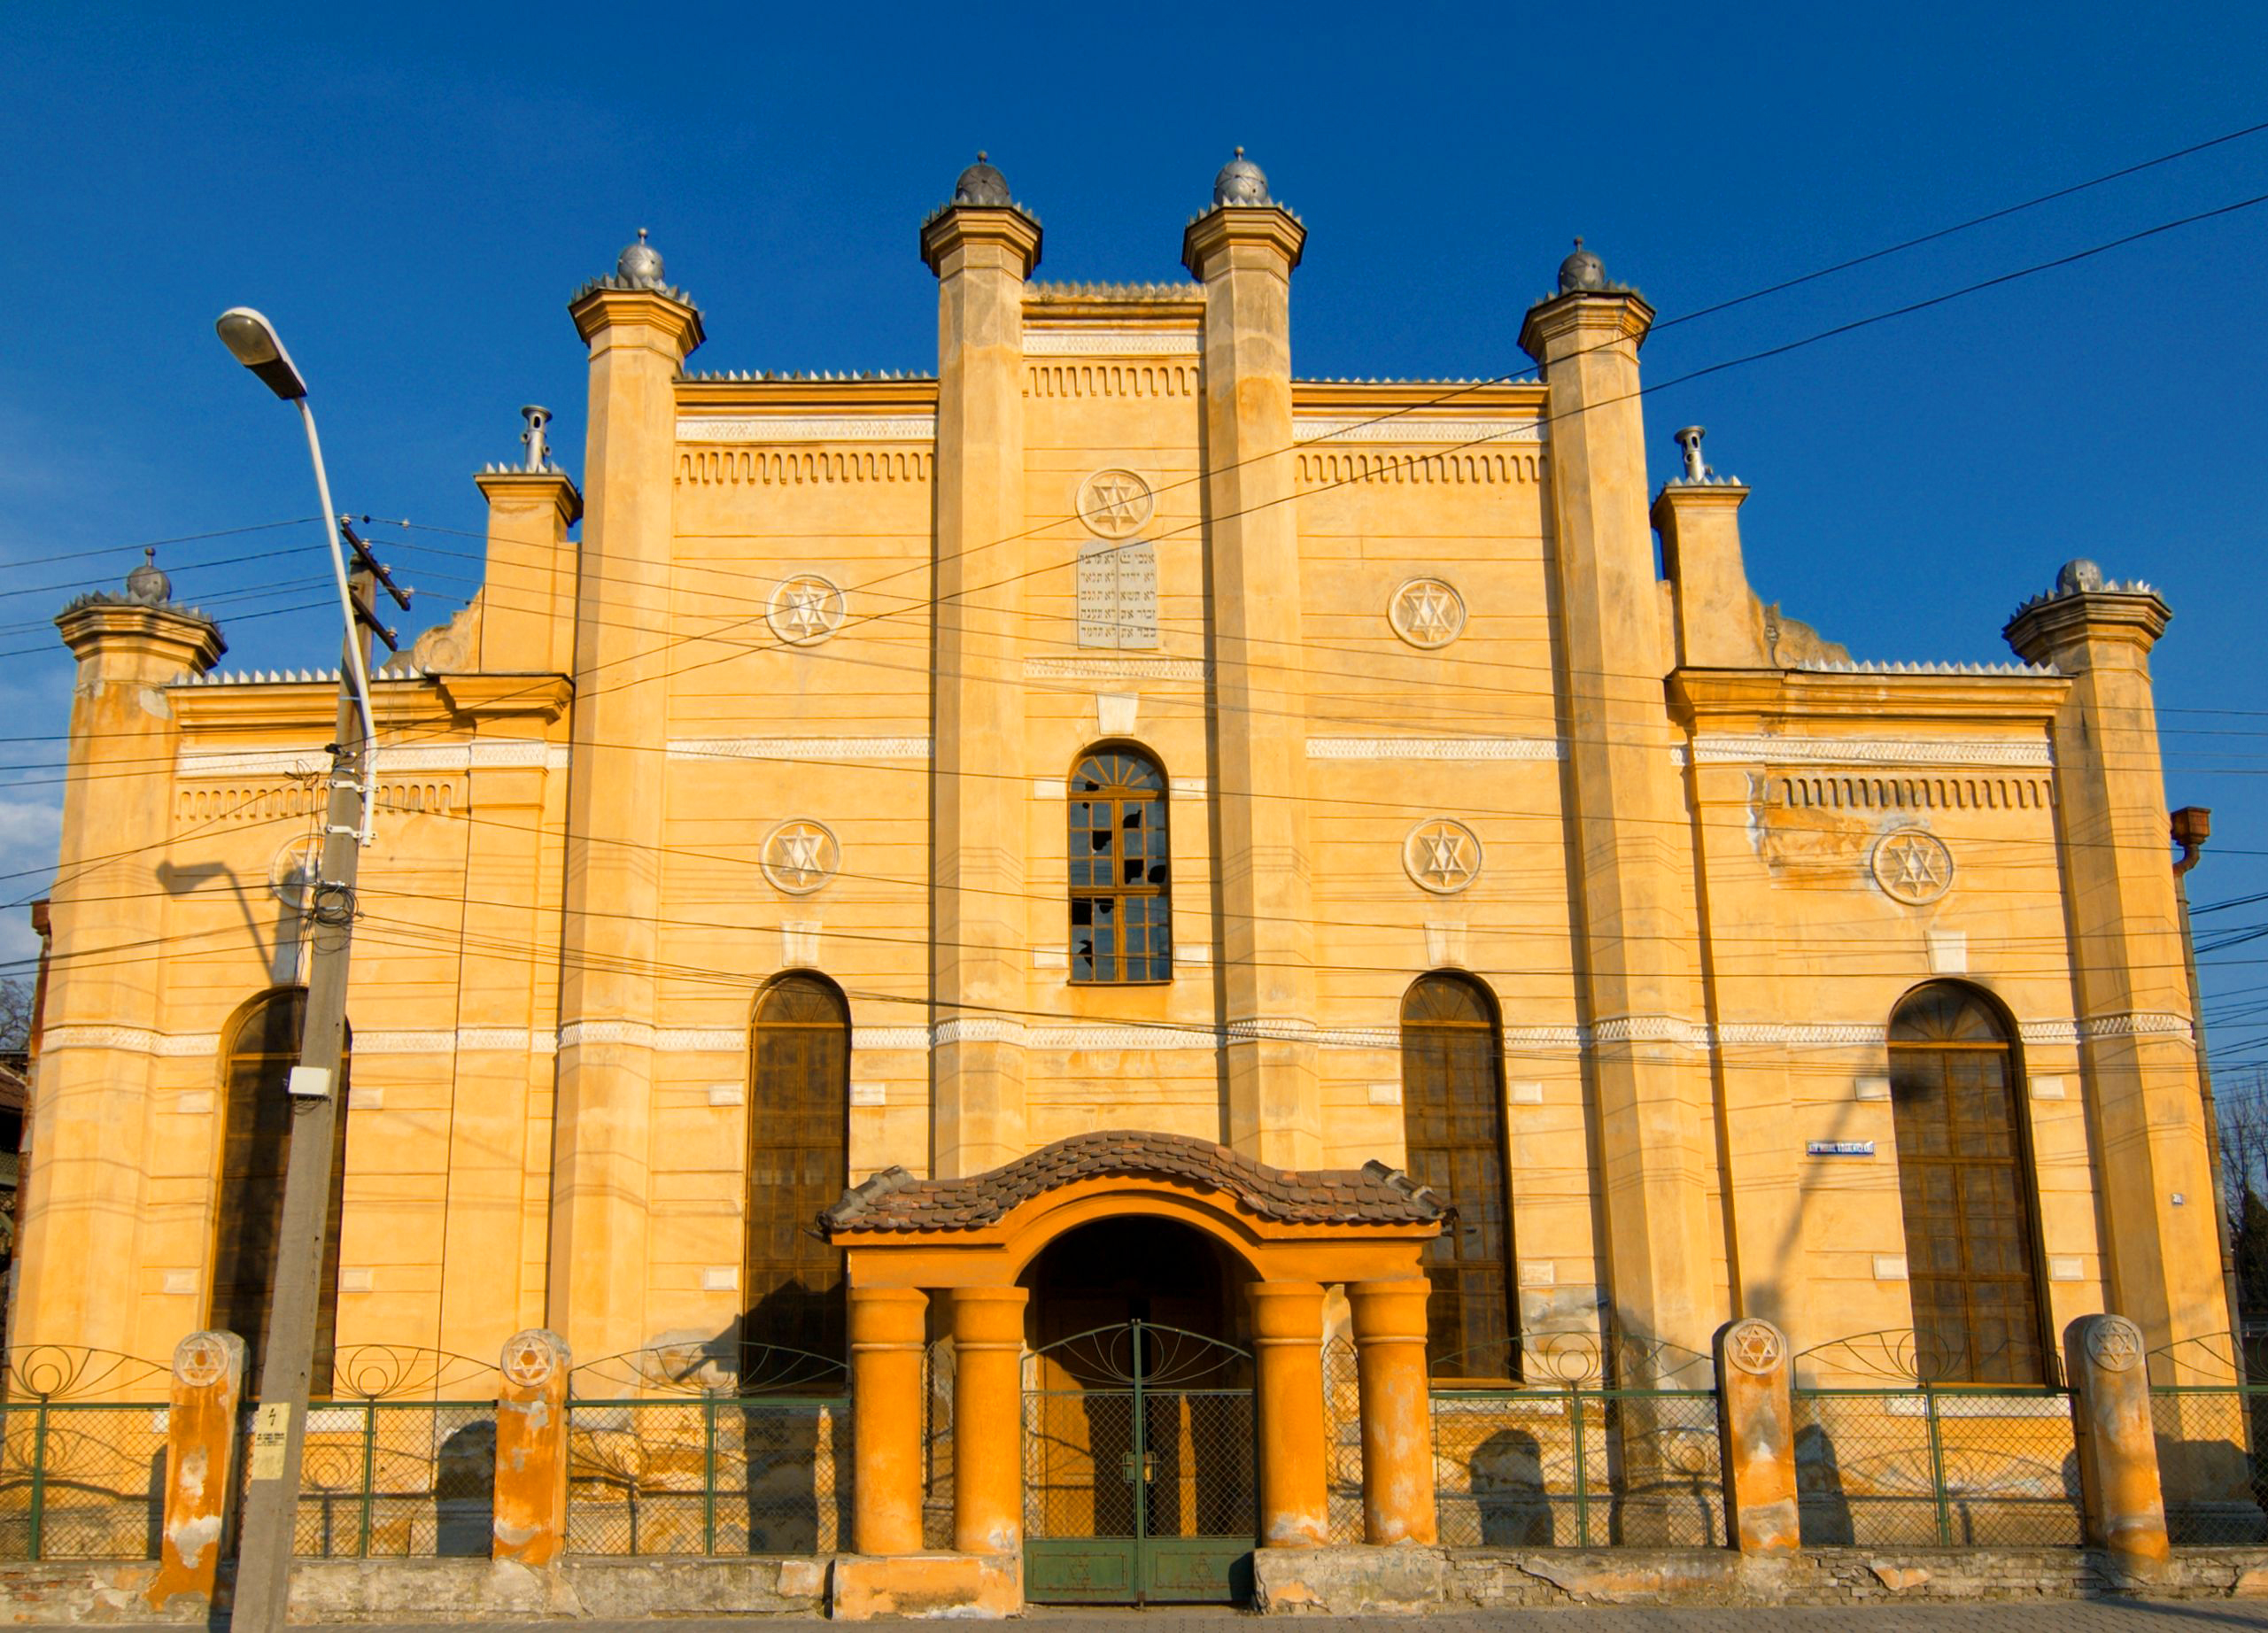 Facade of the Mediaș synagogue, Romania – Photo by Christian Binder